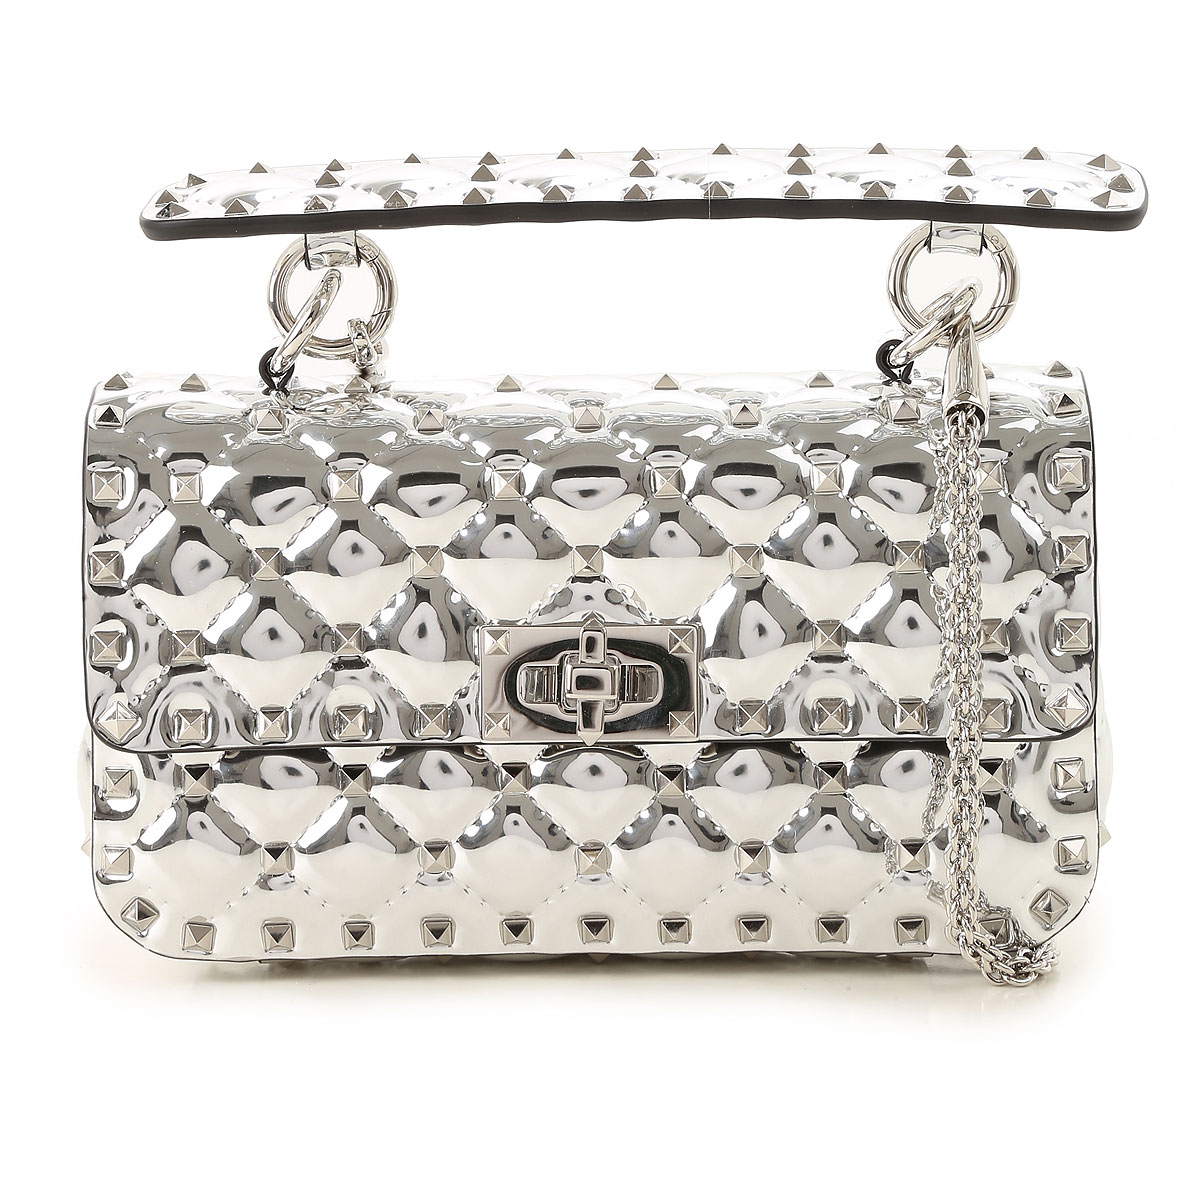 Valentino Shoulder Bag for Women, Silver, Leather, 2017 USA-470966